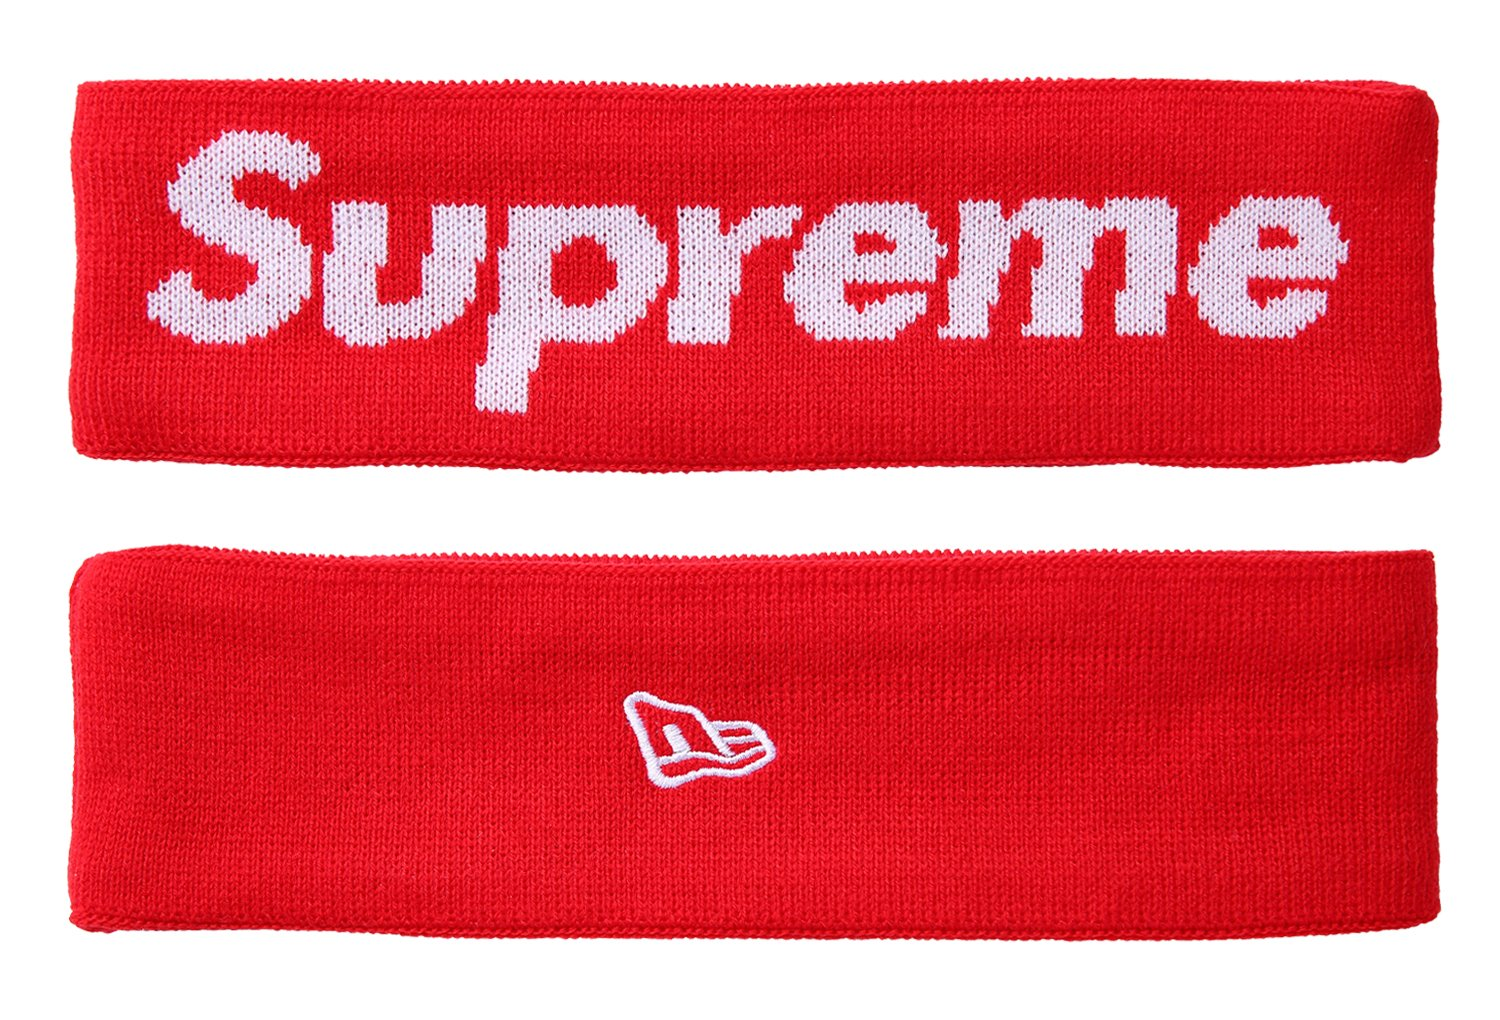 The Mass Sweatband Supreme Headband Perfect for Basketball, Running, Football, Tennis-Fits for Men and Women (Red) by The Mass